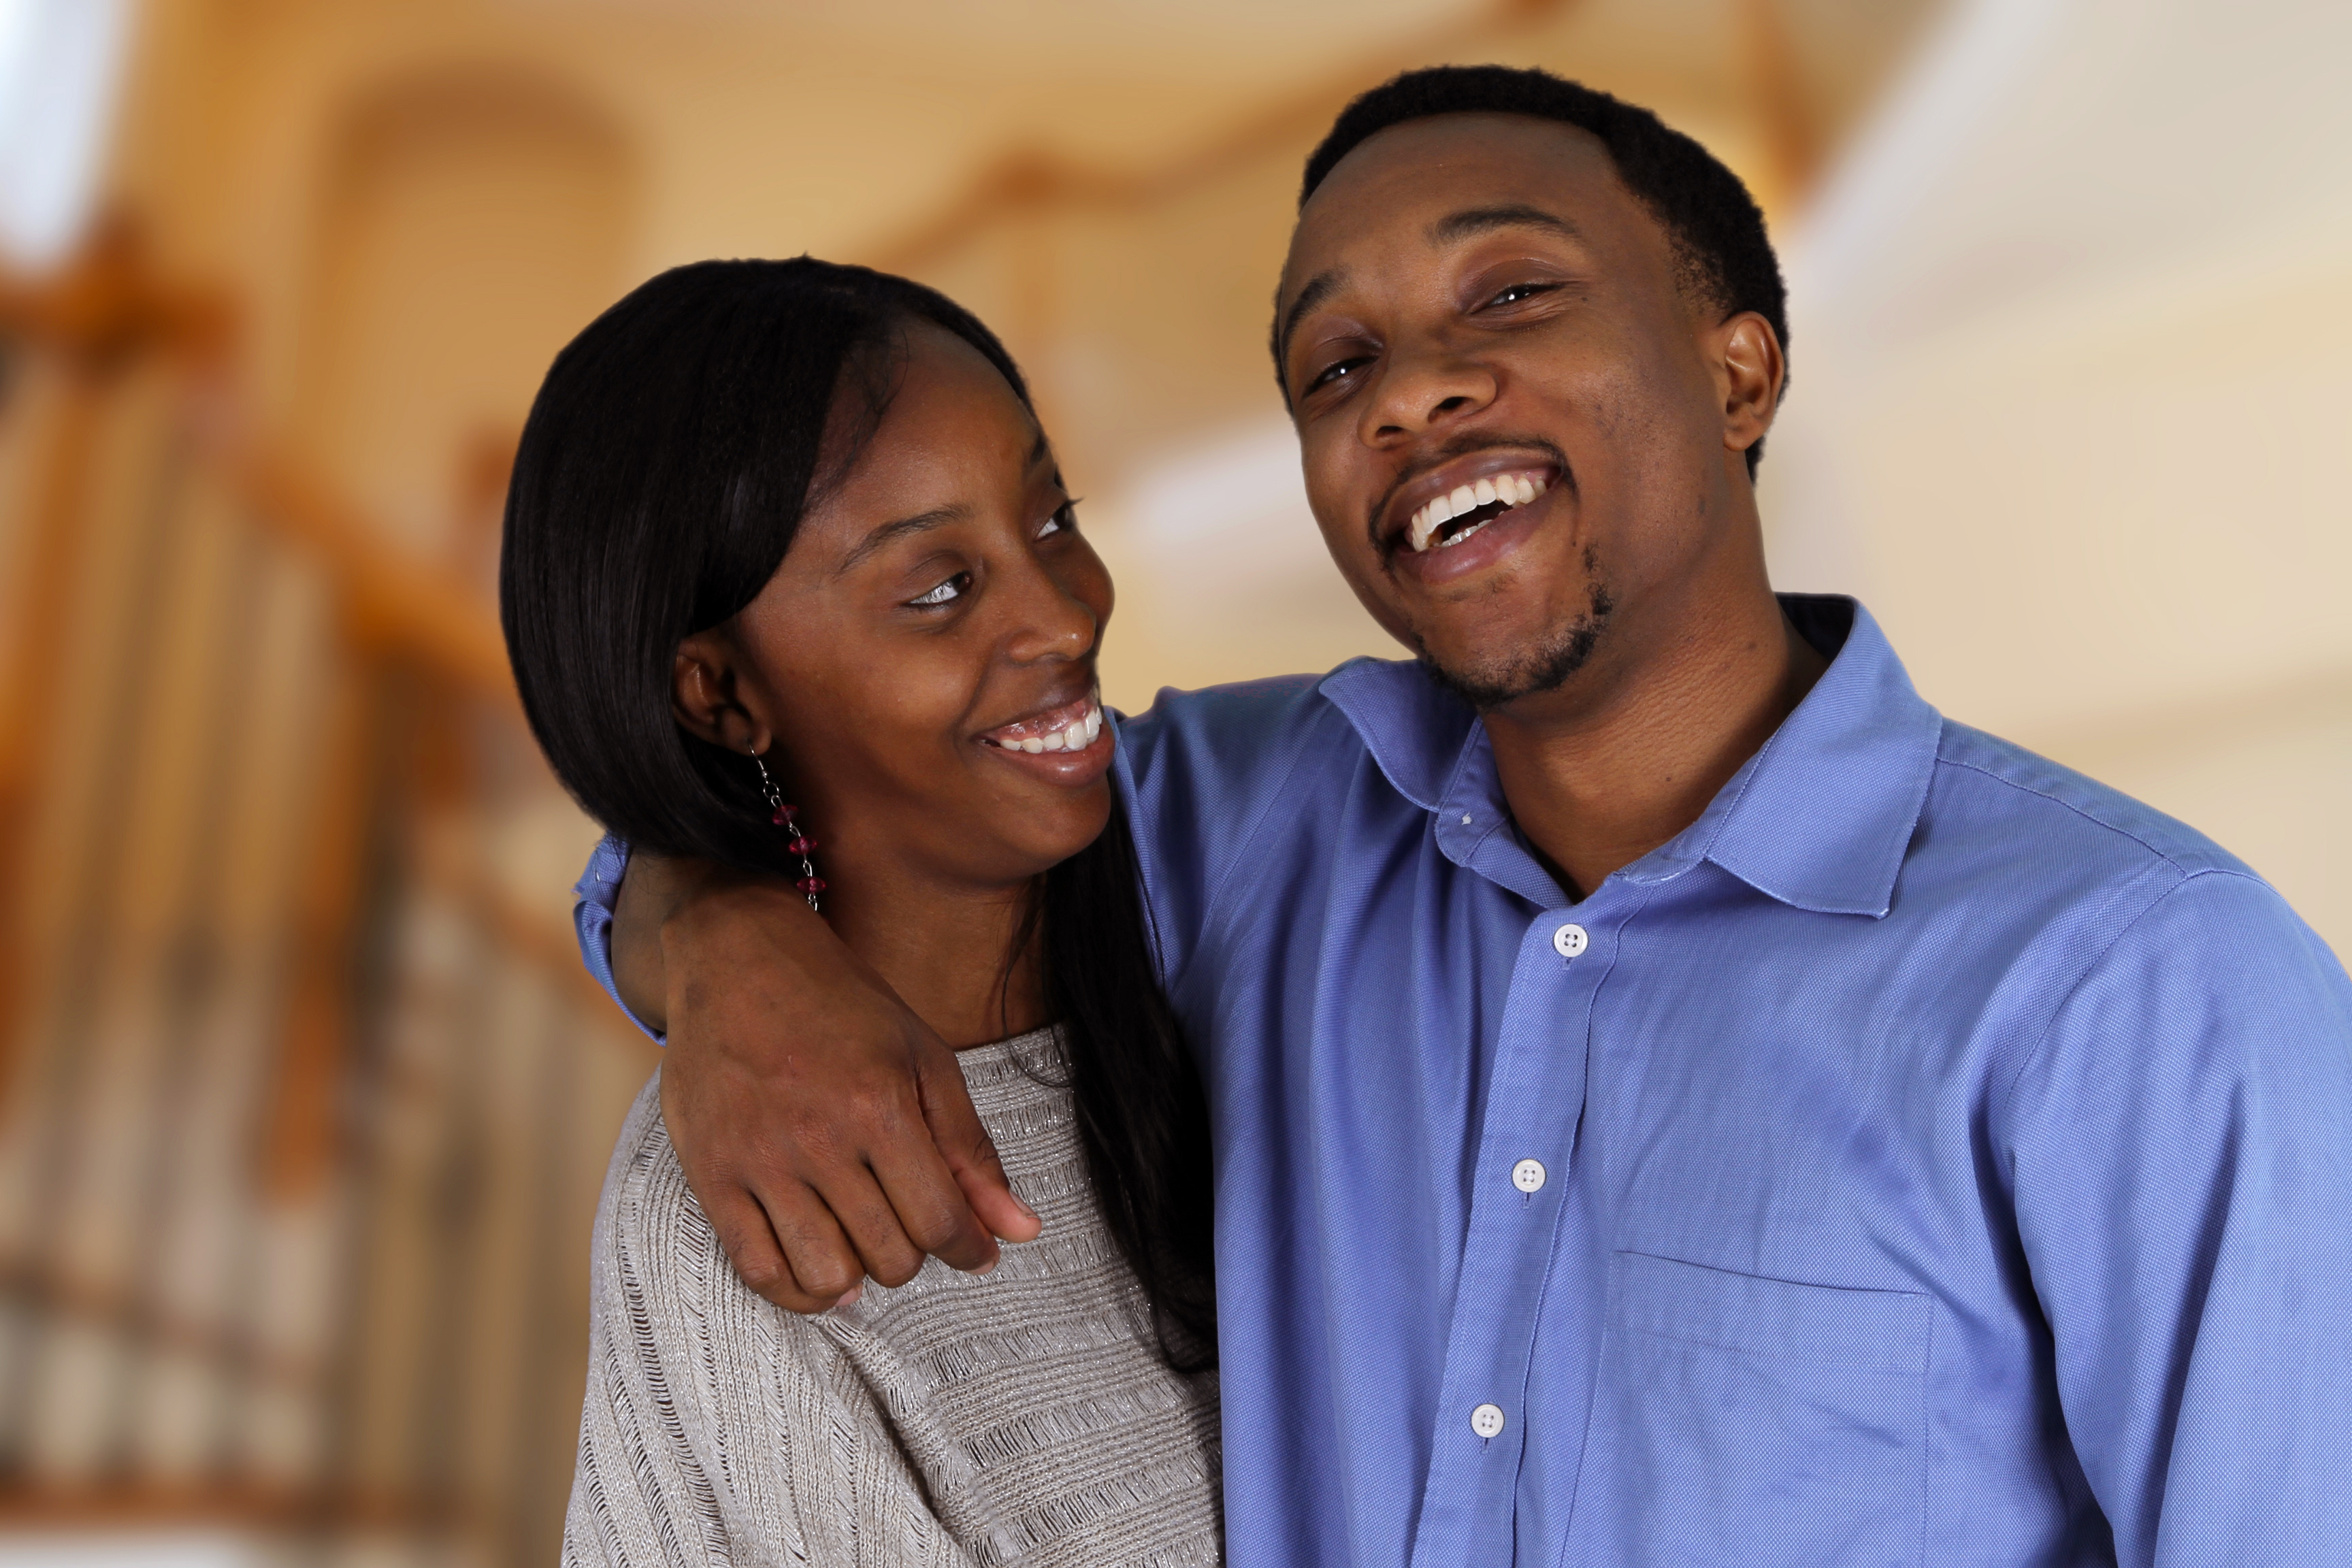 4 Romantic Compromises You Should Expect in Relationships